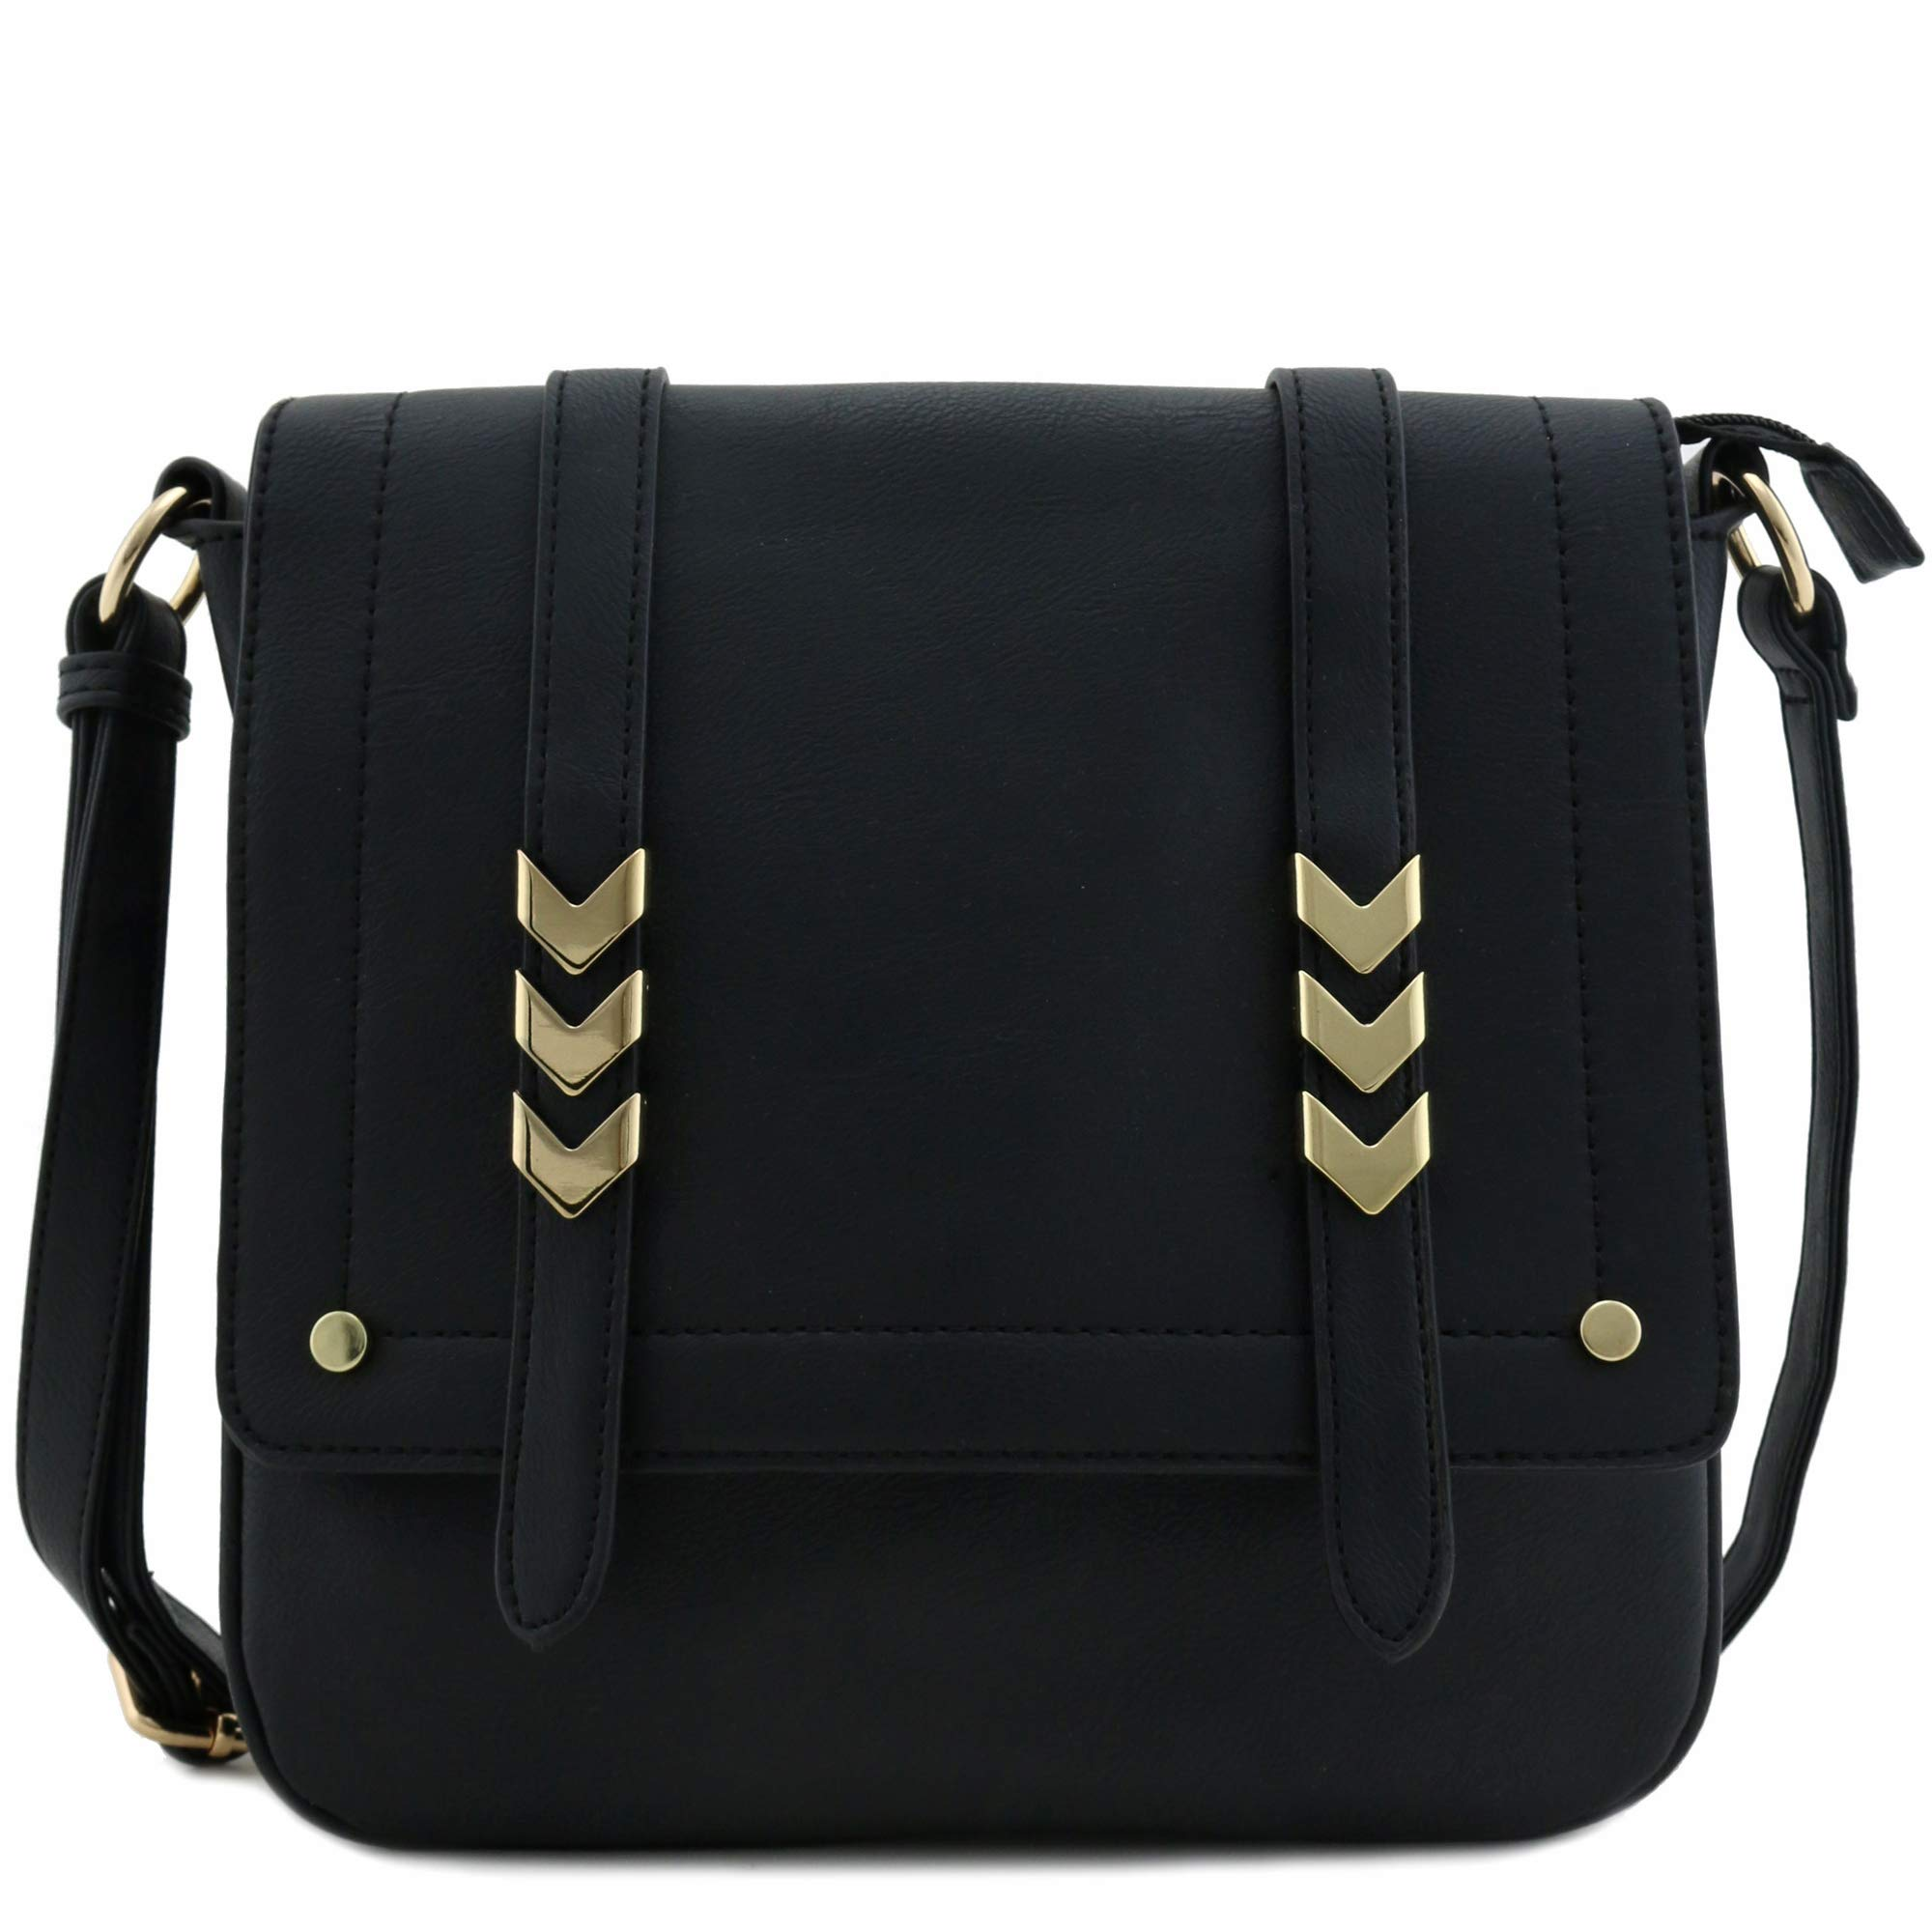 Double Compartment Large Flap Over Crossbody Bag Black by Alyssa